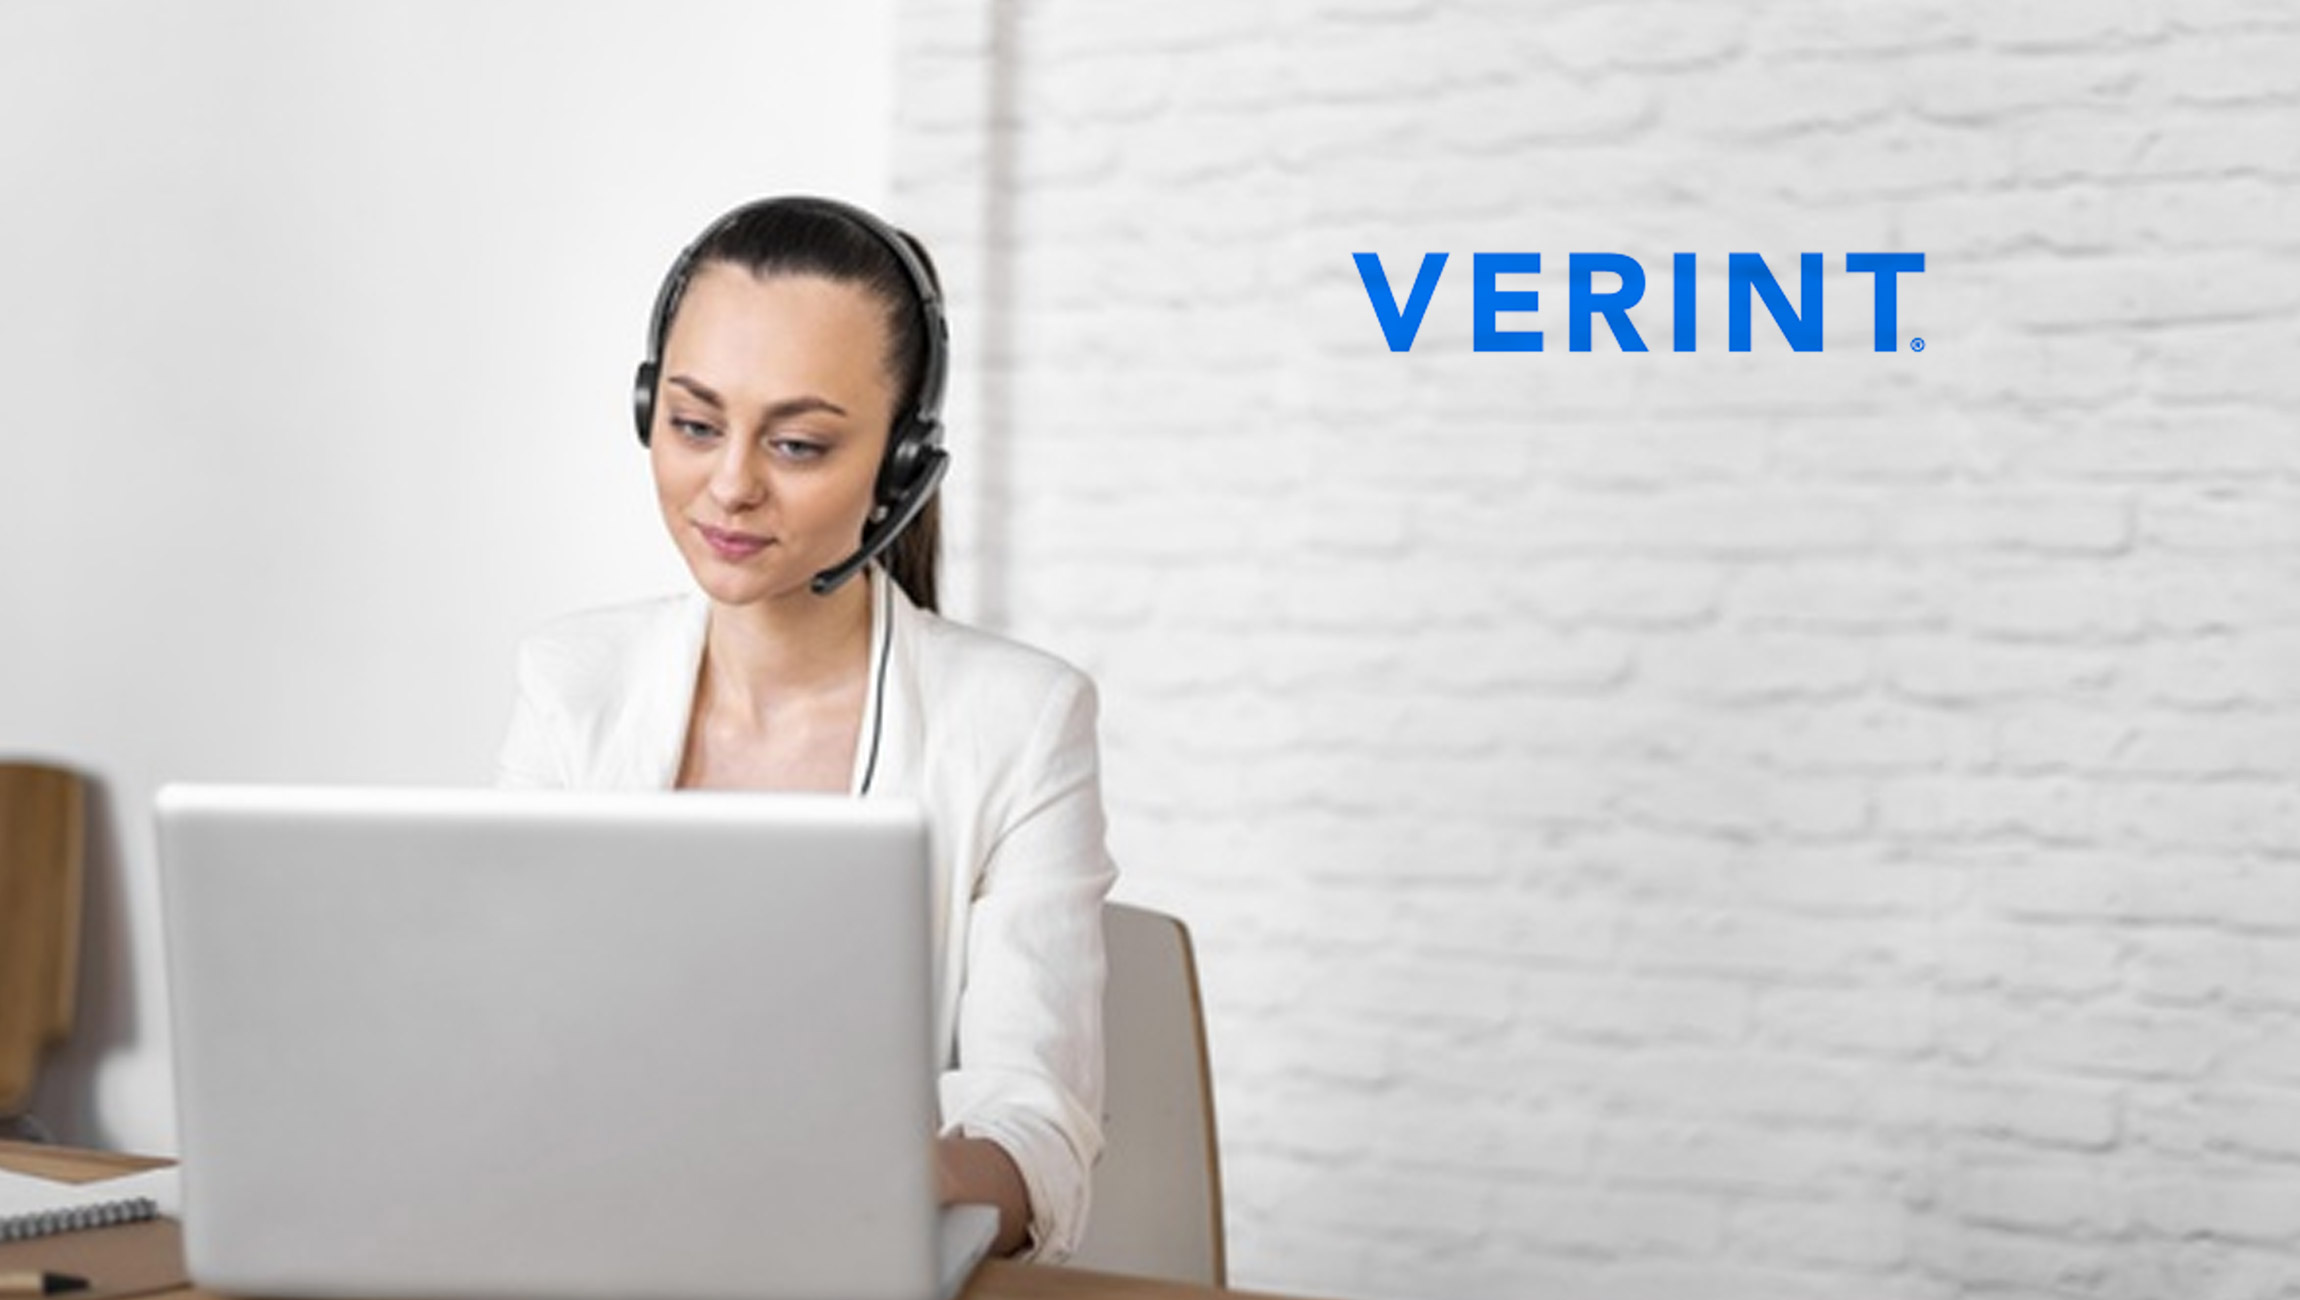 Verint Positioned As Aa Leader In 2021 Gartner Magic Quadrant For Workforce Engagement Management For The 13th Consecutive Year